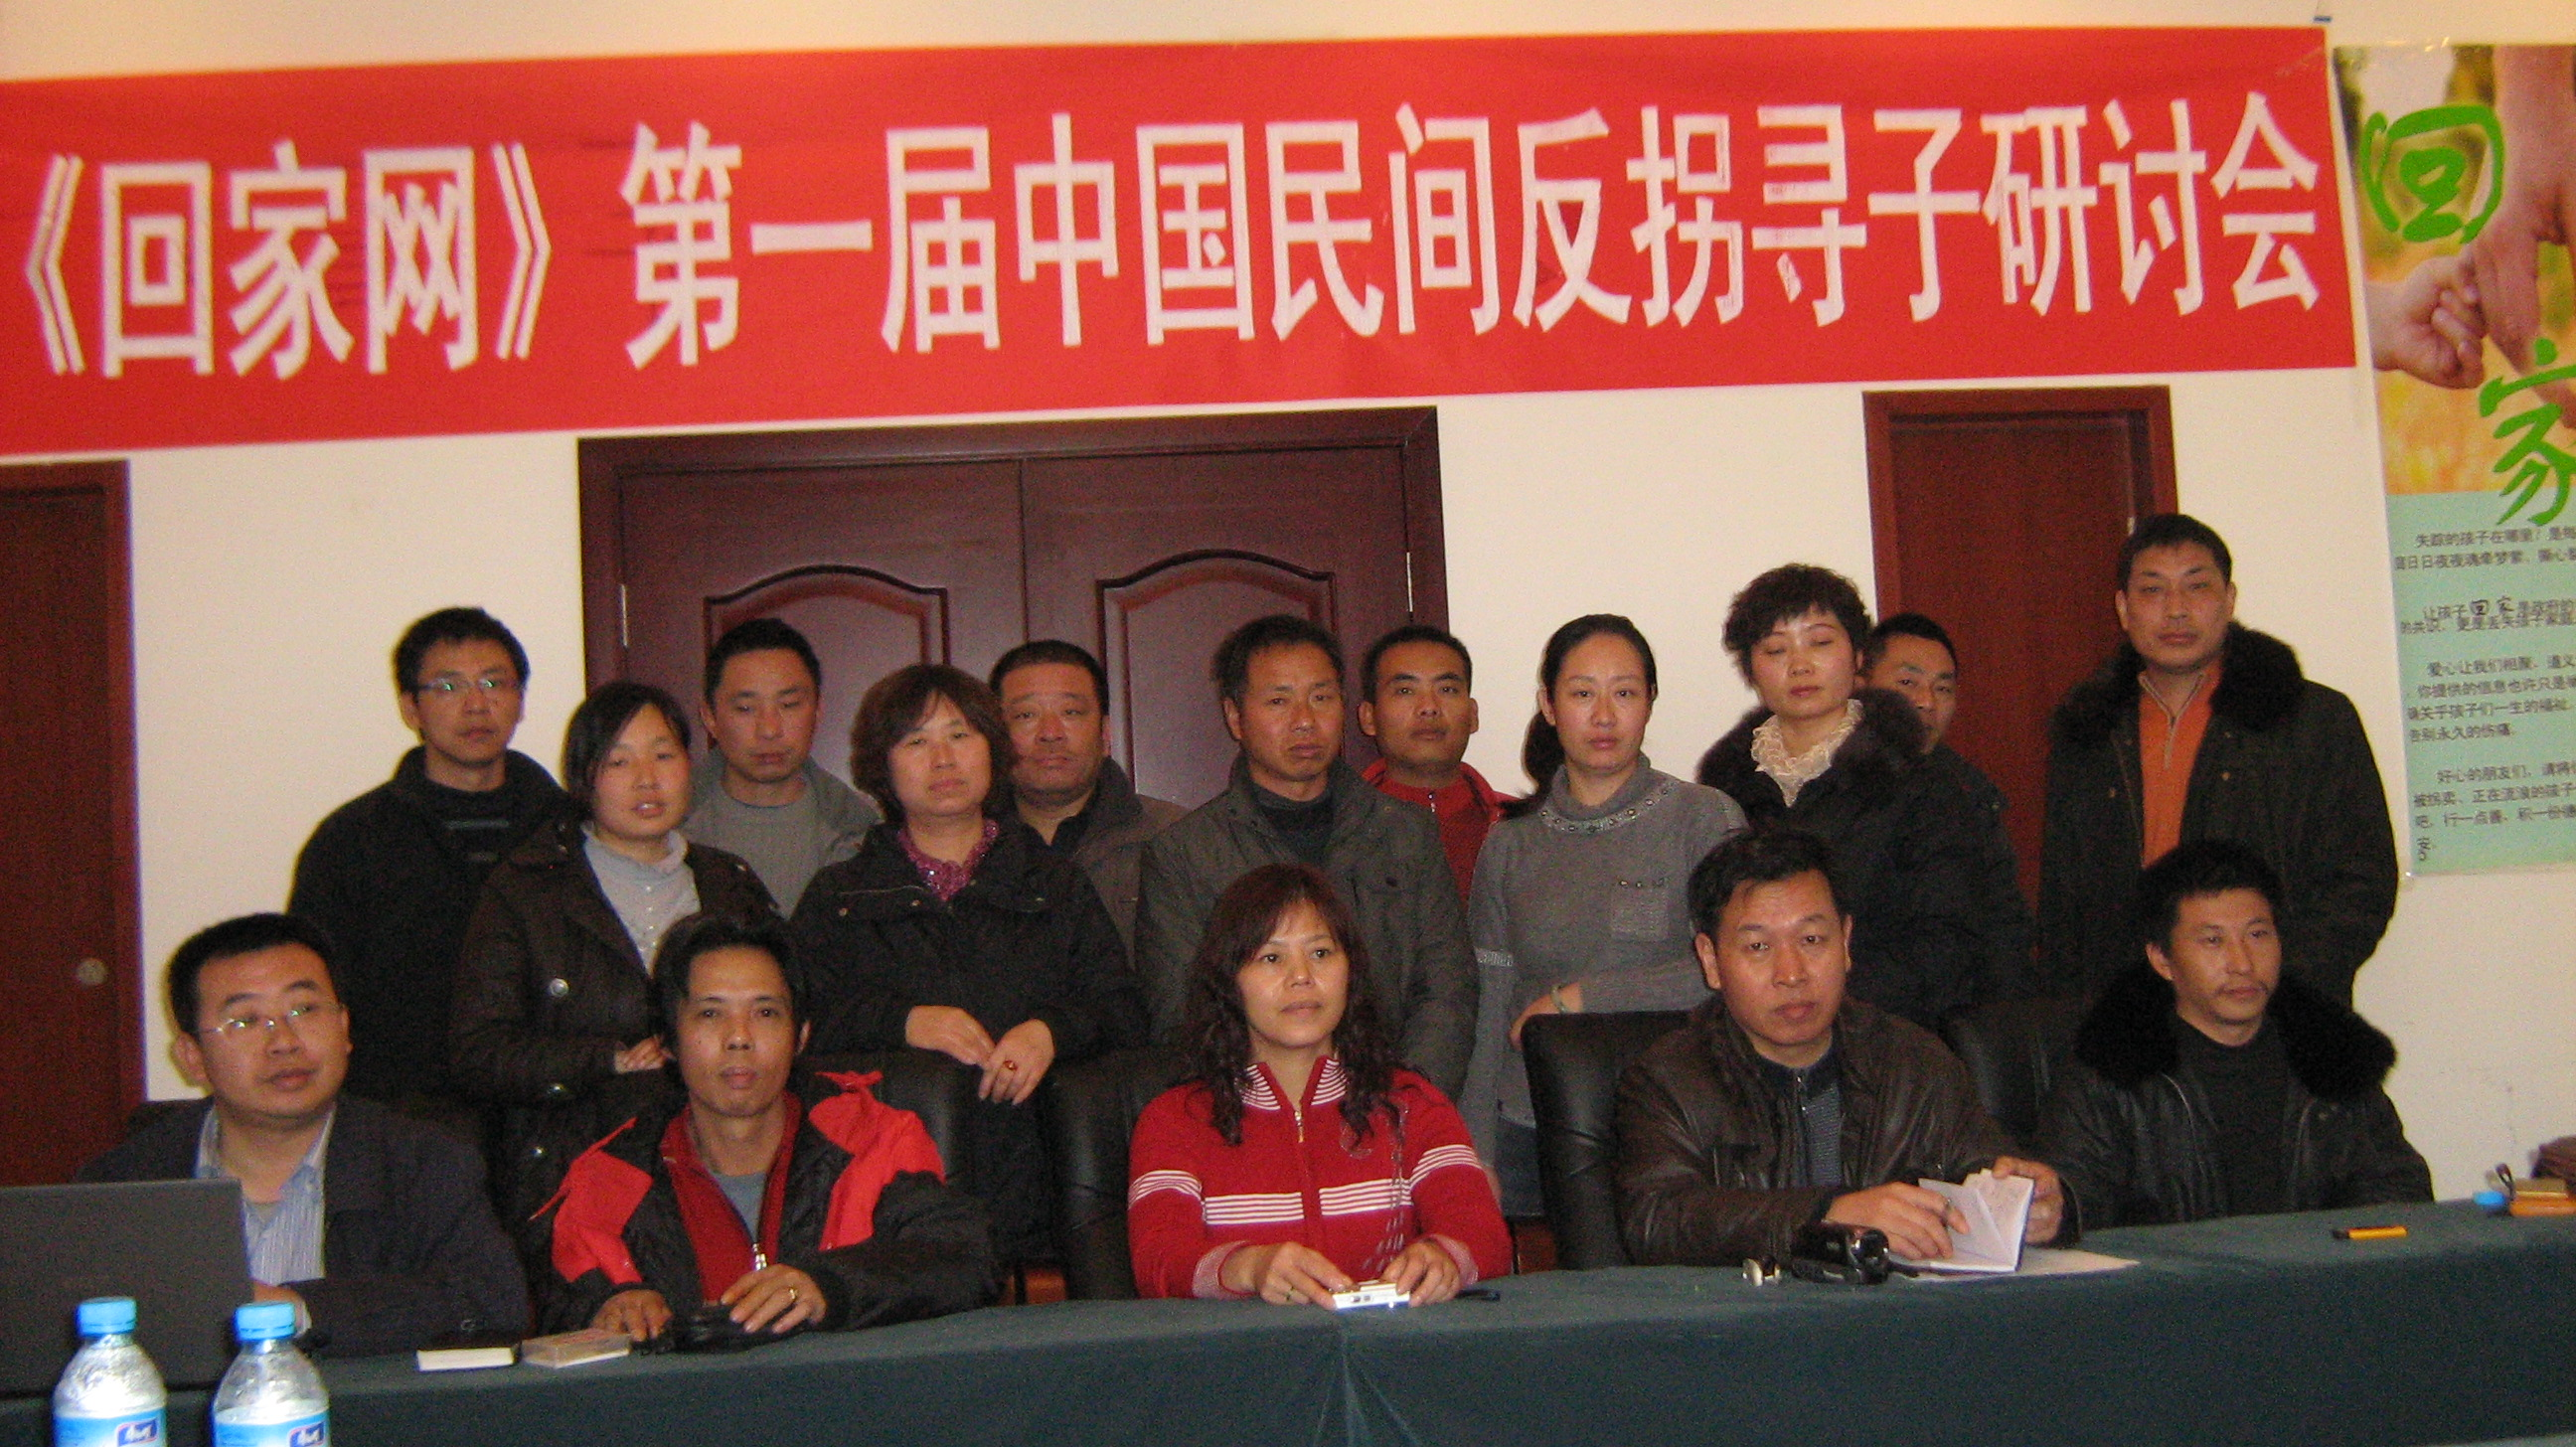 12-15-2010_Henan_Conference[1]